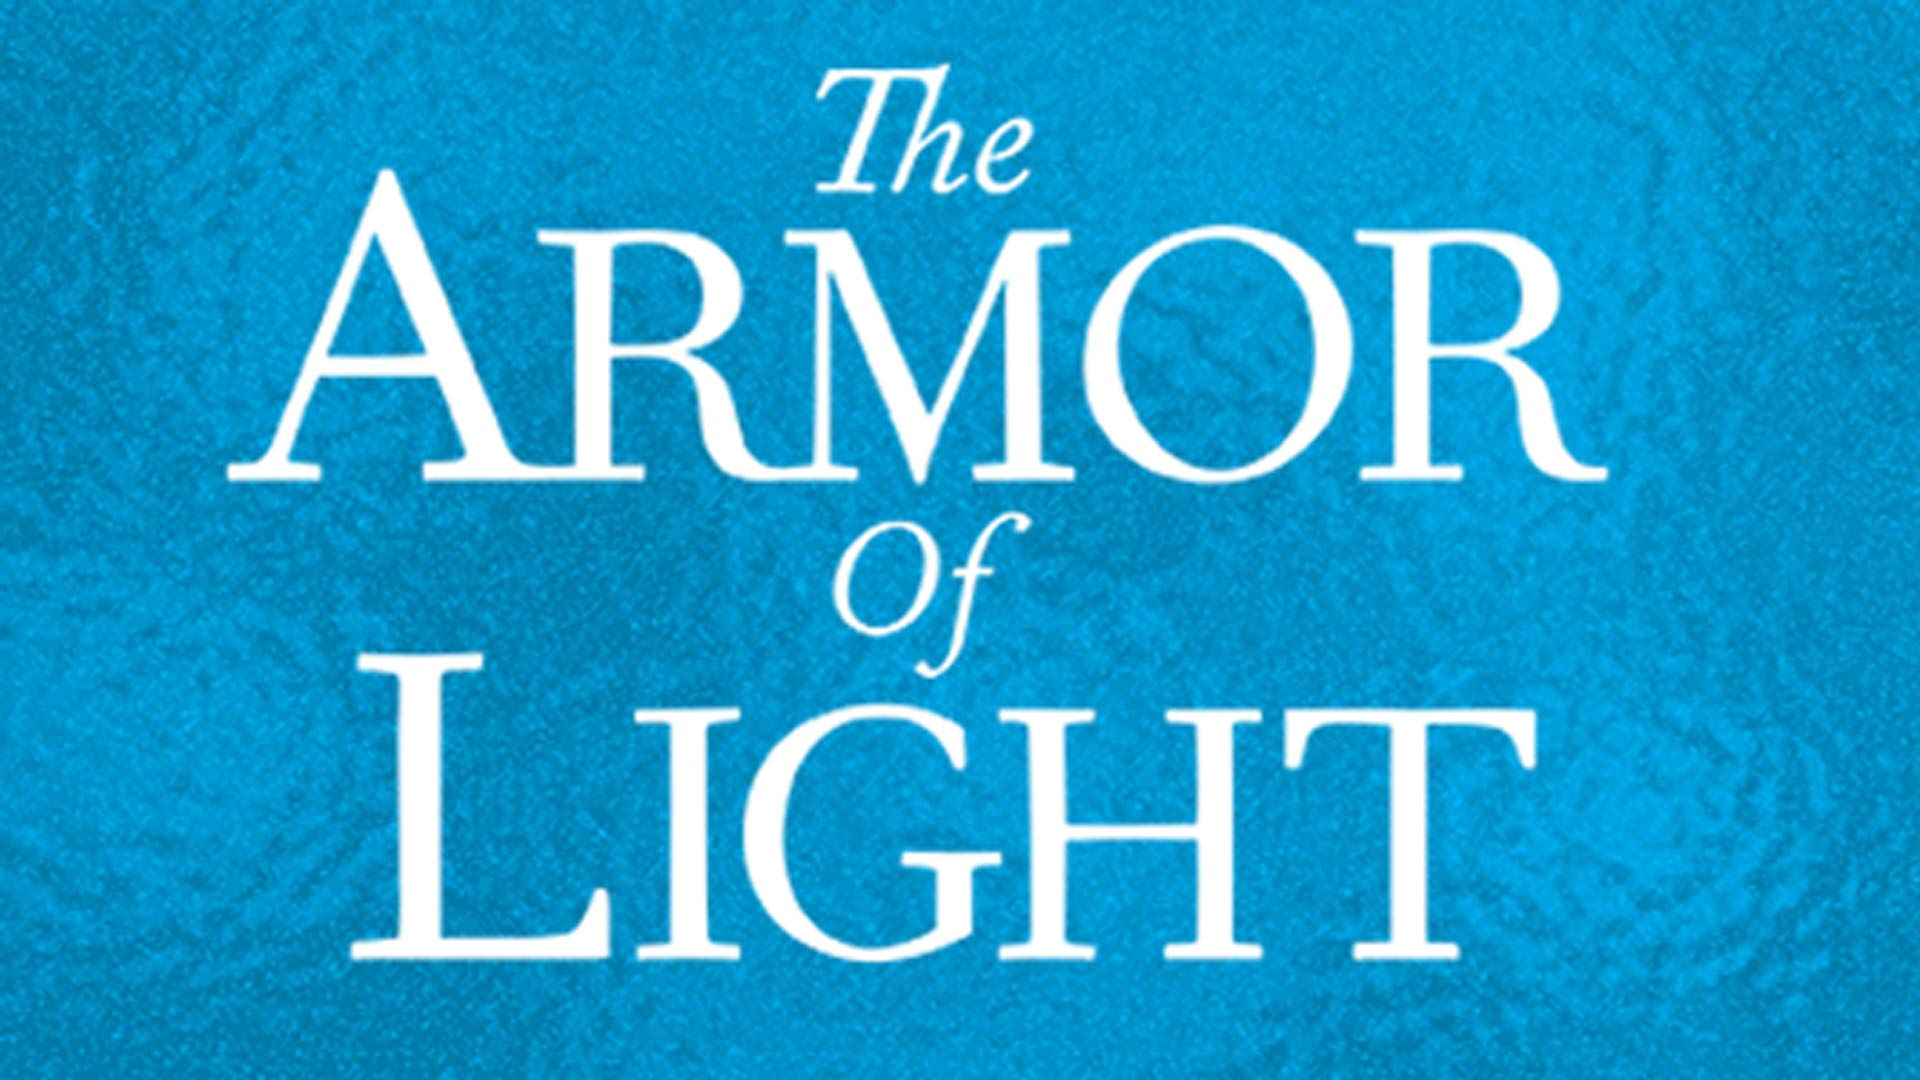 The Armor of Light - image